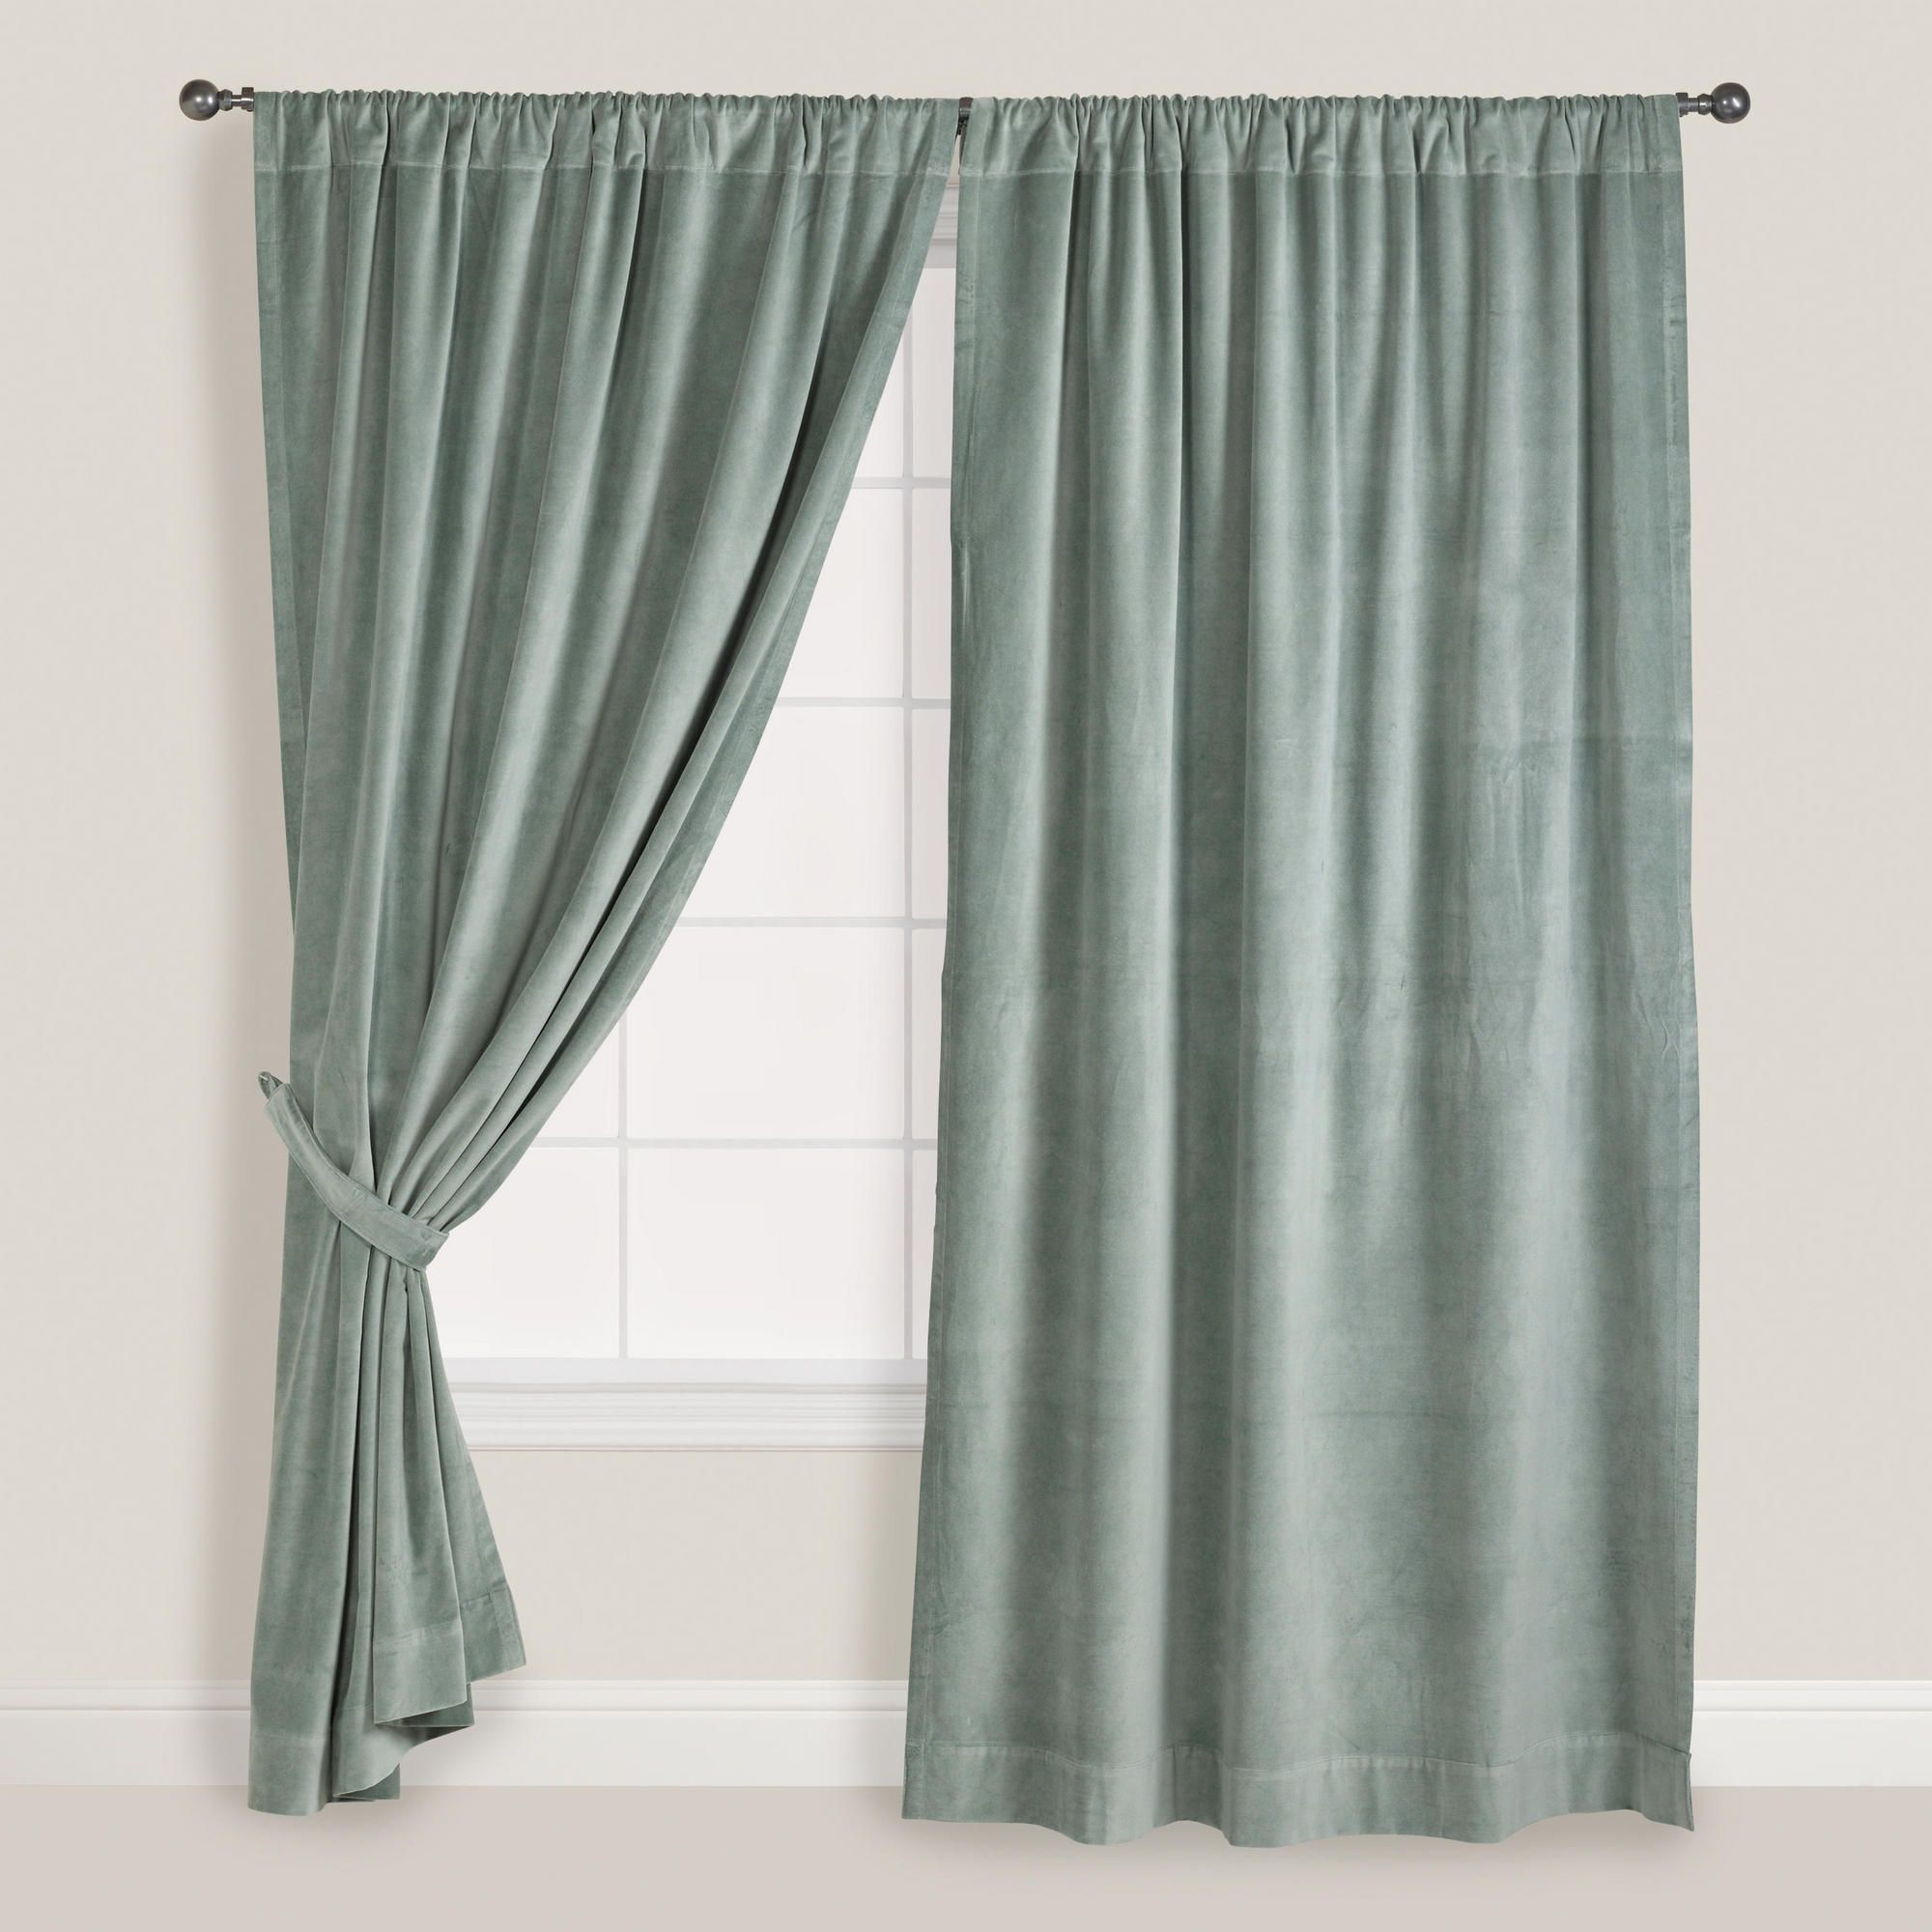 linen curtains w natural woven blackout bq at cm departments b pencil diy plain q l pleat riley prd